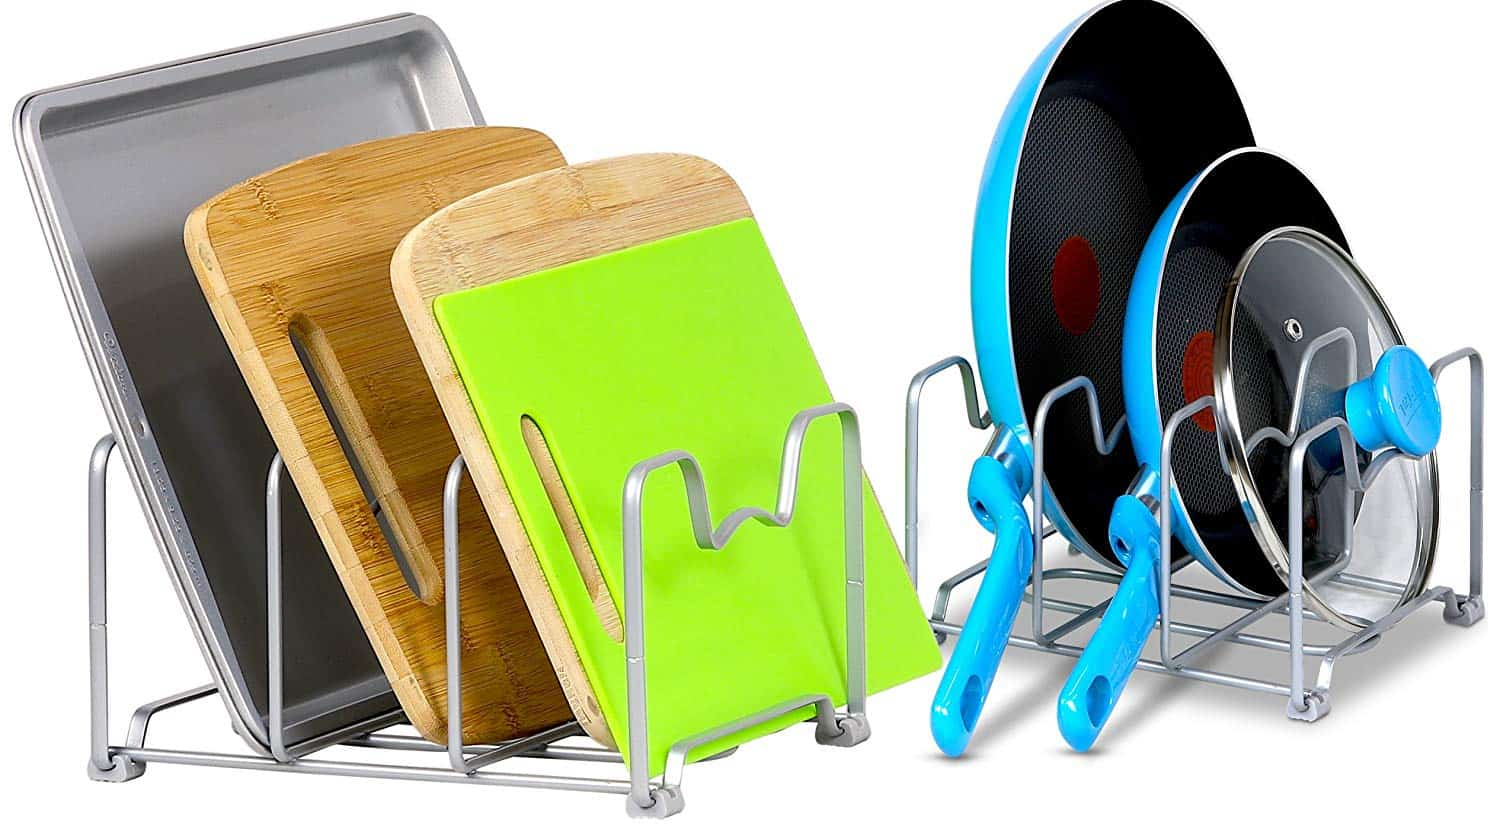 Kitchen Cabinet Organization iDeas - use a pan and lid rack